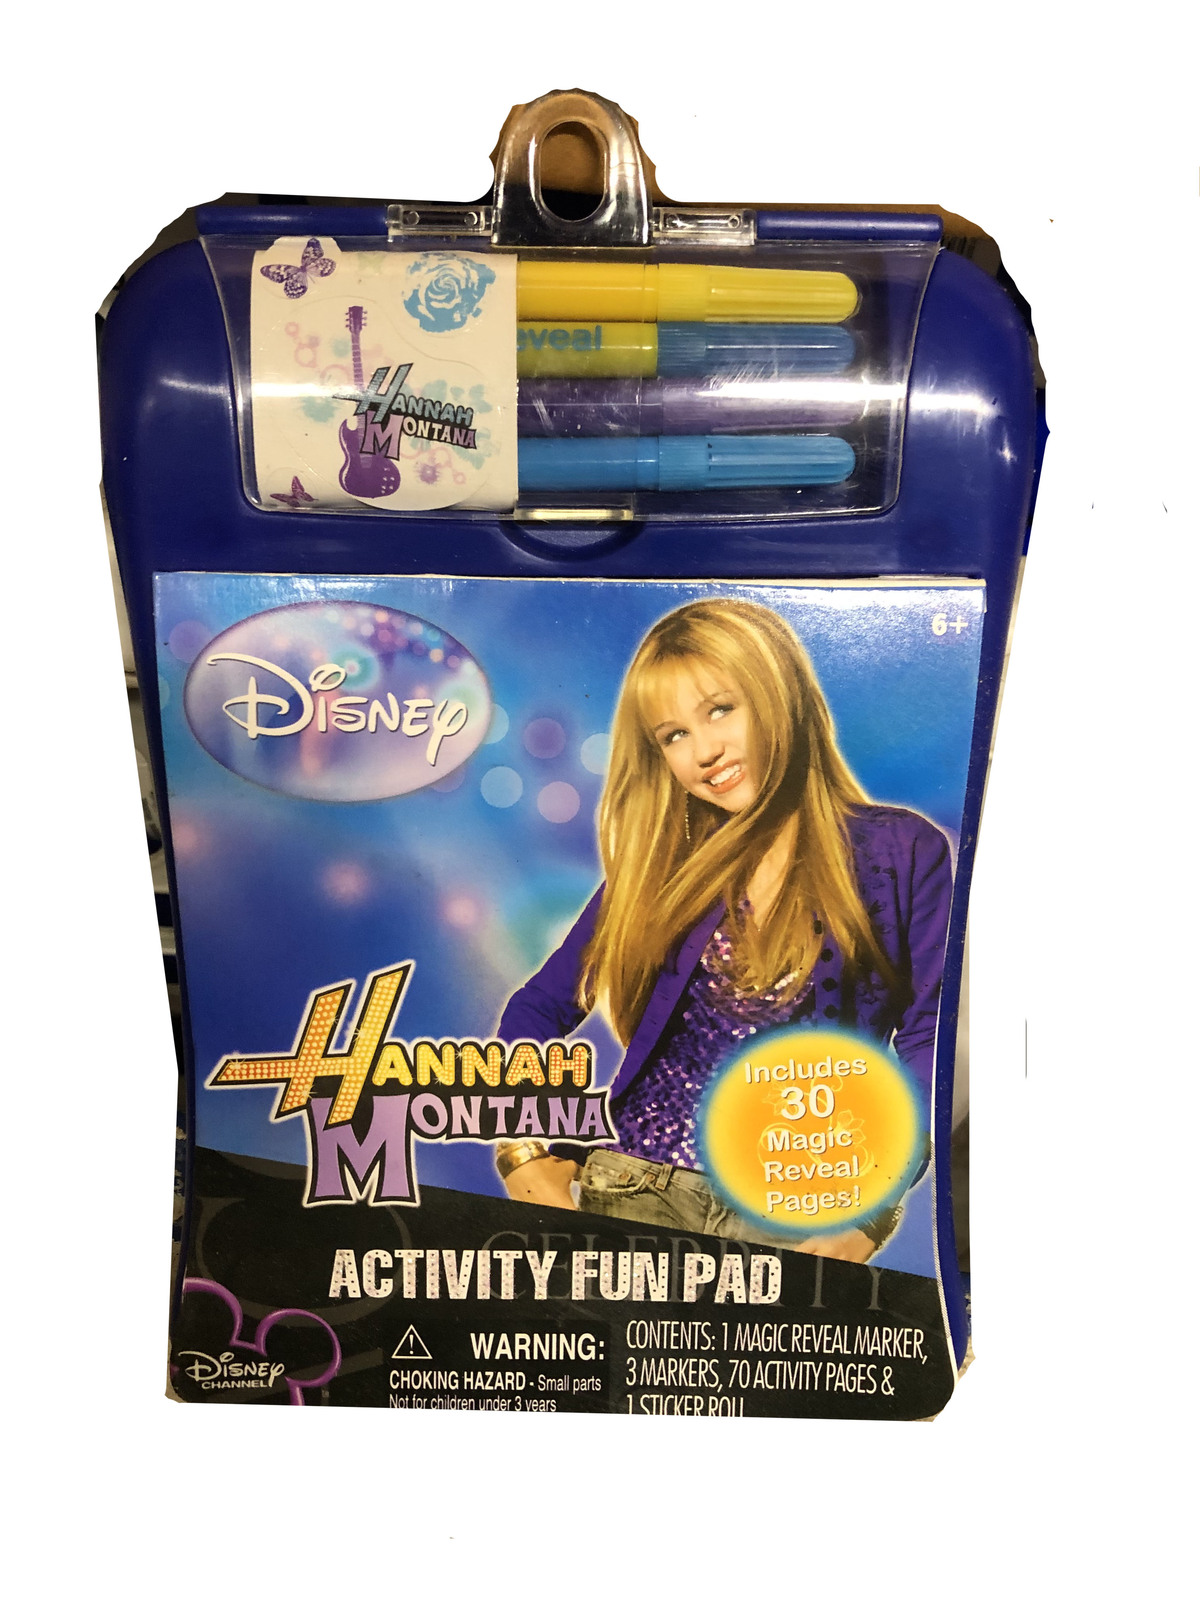 Primary image for Hannah Montana Activity Fun Pad Includes 30 Magic Reveal Pages